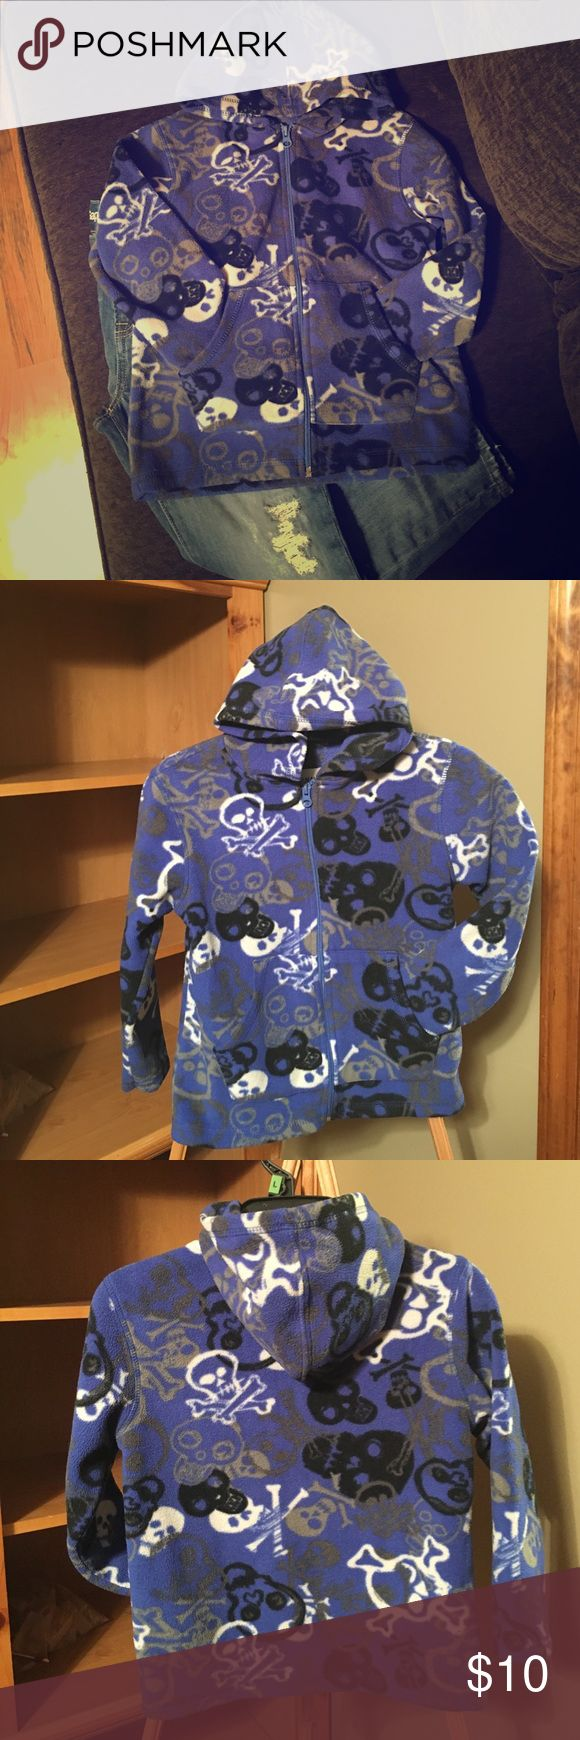 Boy's Old Navy Zip Up Hooded Fleece Boy's Old Navy zip up hooded fleece. PERFECT CONDITION. Skulls and crossbones ☠️ Oh My! 😱 Perfect for your little rocker. 🤘🏼 Old Navy Shirts & Tops Sweatshirts & Hoodies